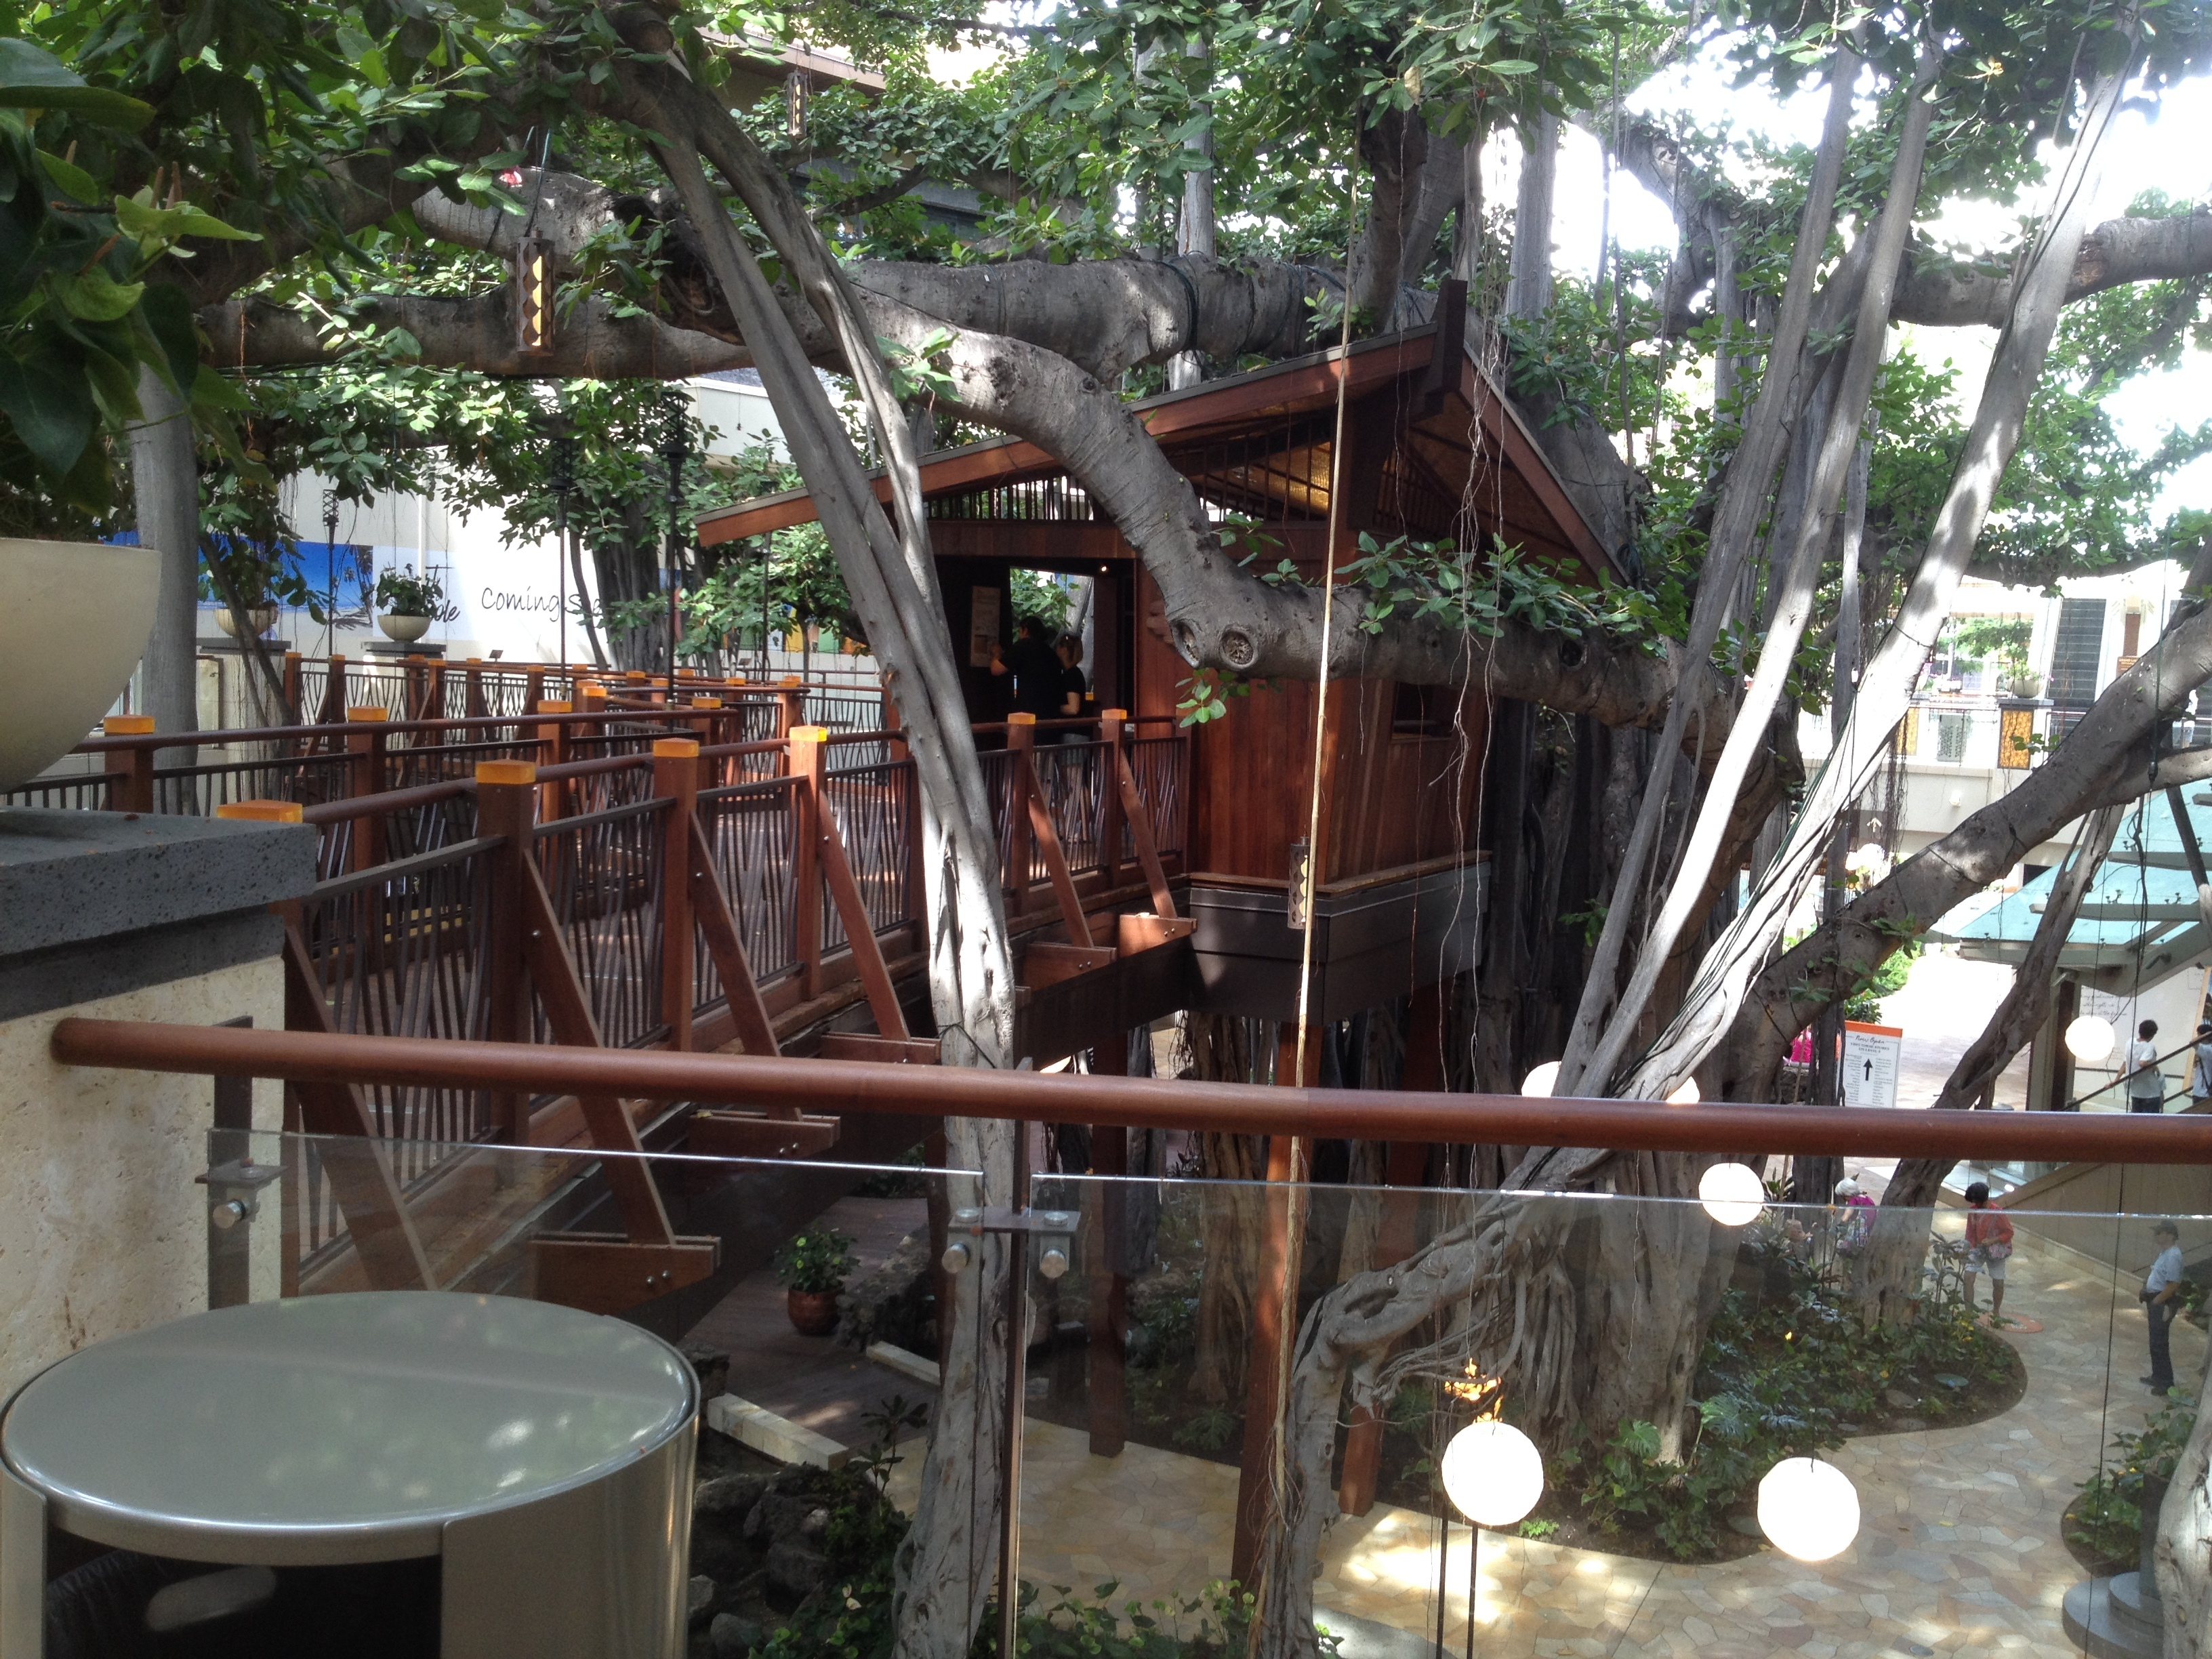 Don the Beachcomber's Treehouse in Banyan Tree at the International Market Place in Waikiki